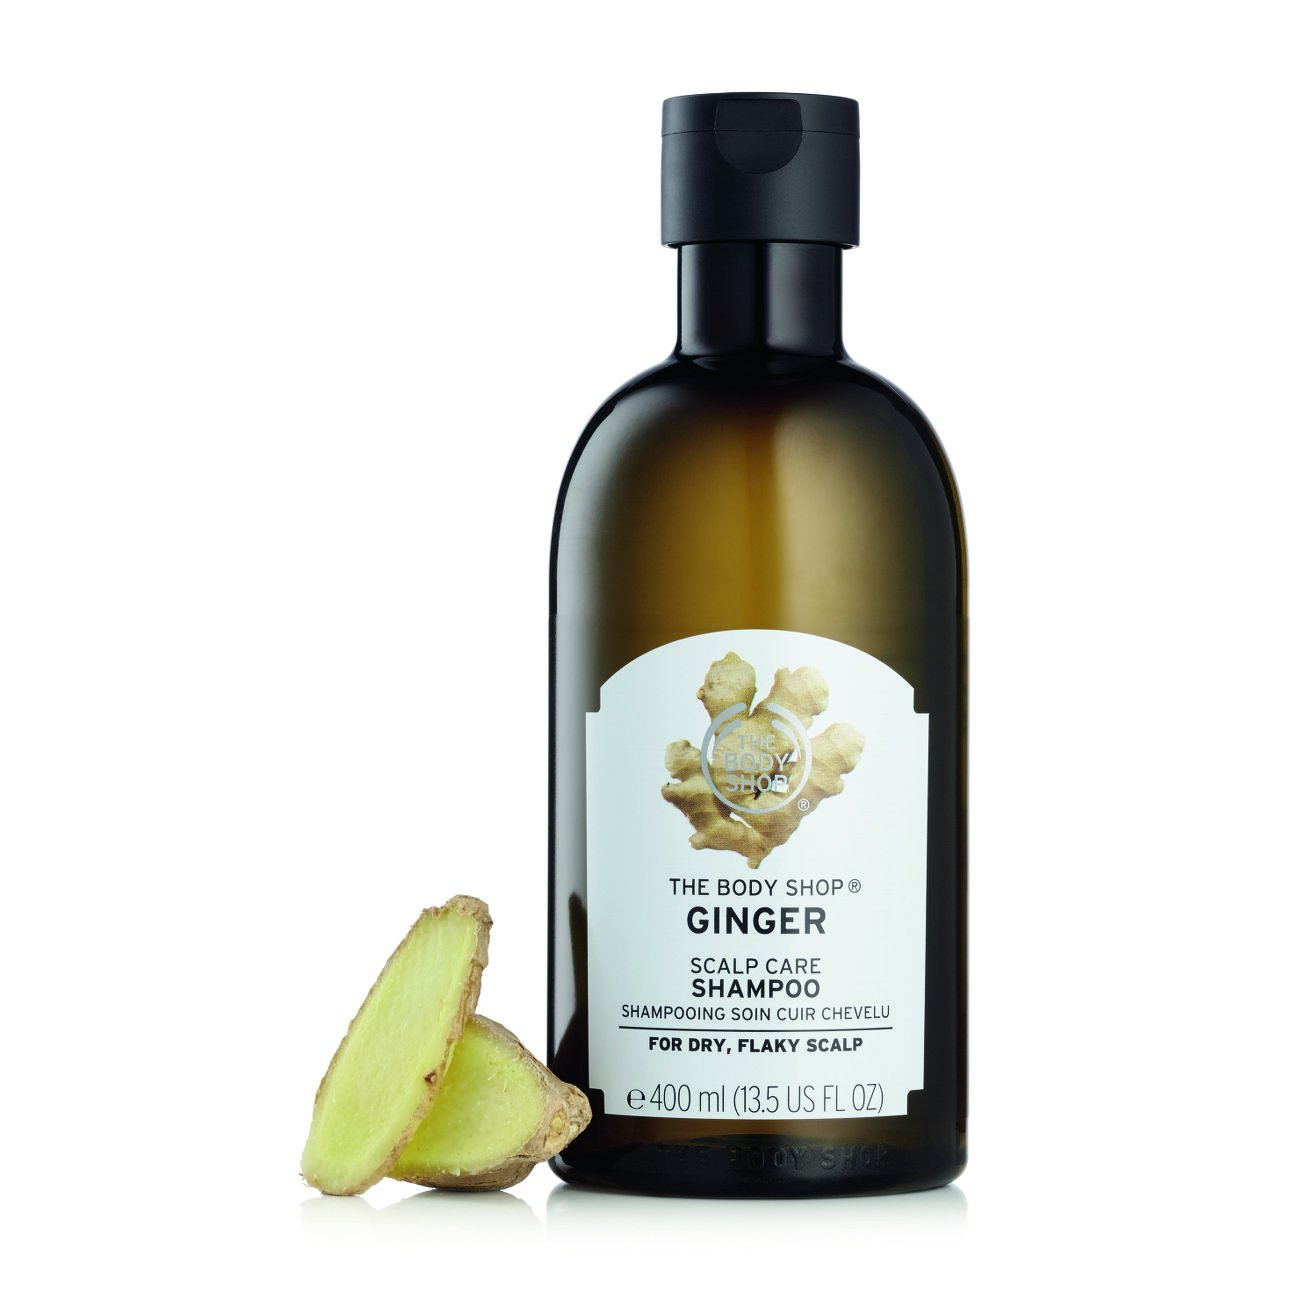 5. The Body Shop Ginger Scalp Care Shampoo